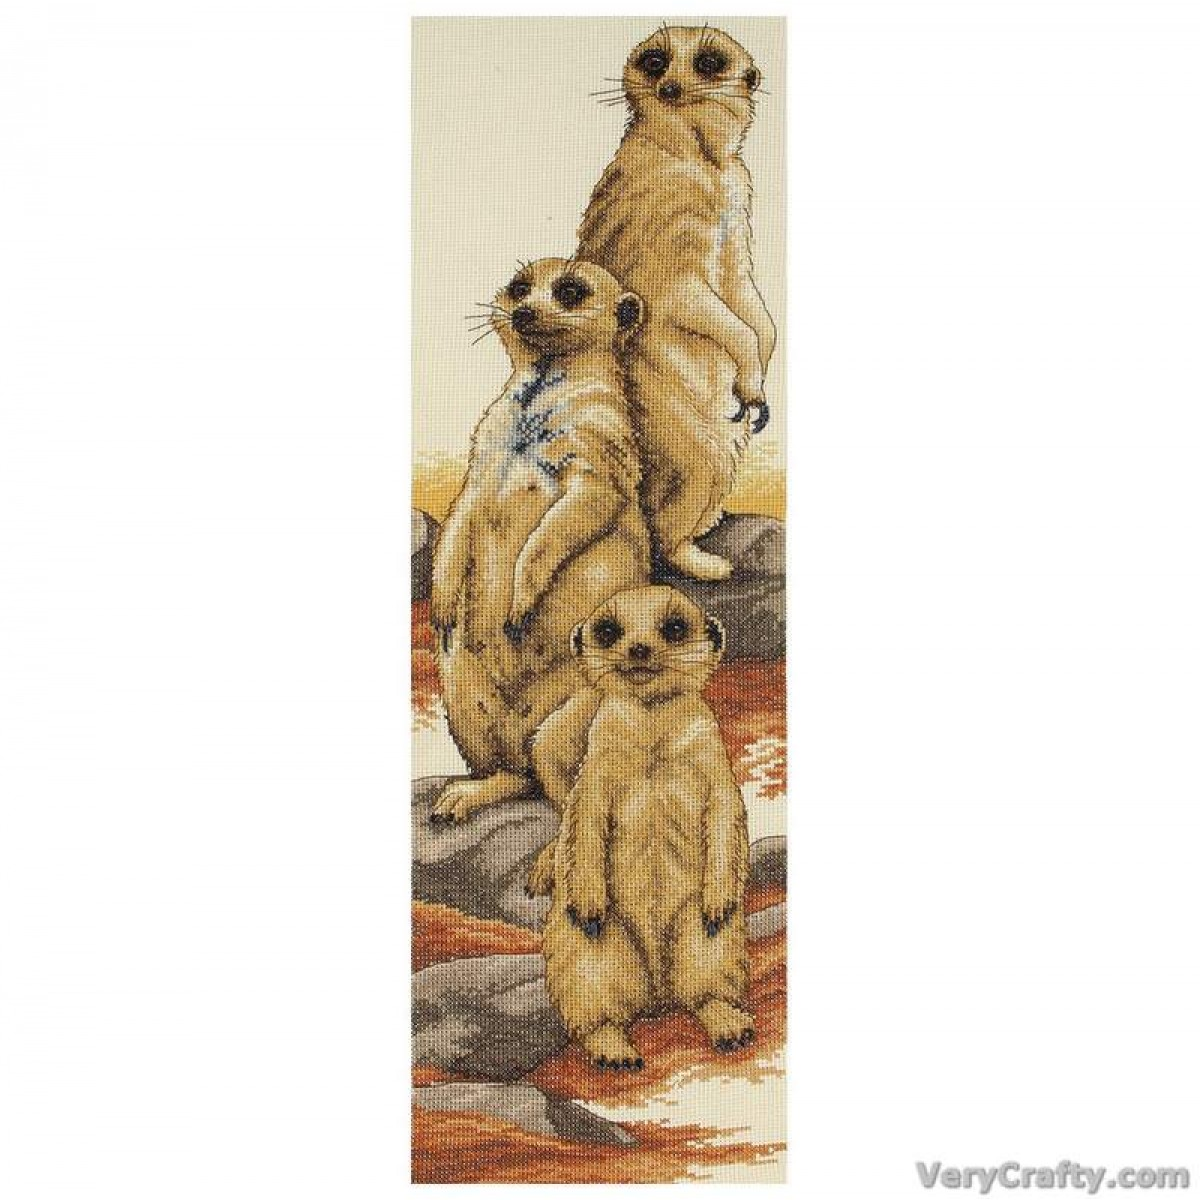 Meerkats Counted Cross Stitch Kit by Heritage Crafts 14 Count Cream Aida